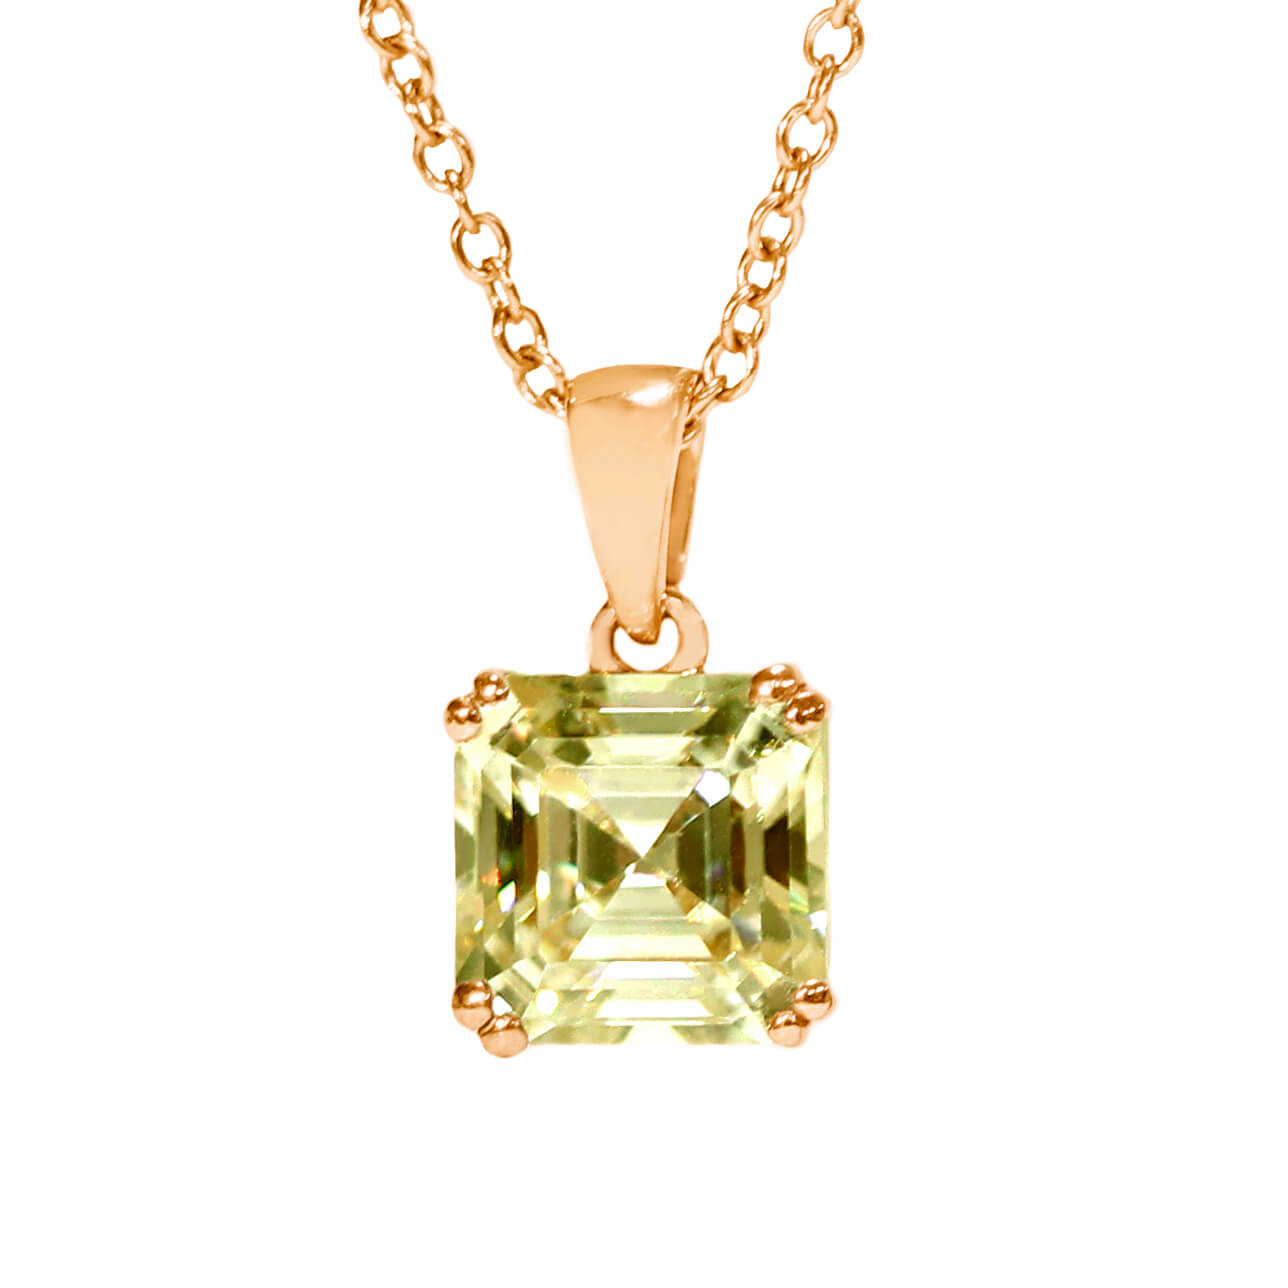 Intense Yellow Moissanite Asscher Cut 18K Gold Pendant - Lecaine Gems Moissanite